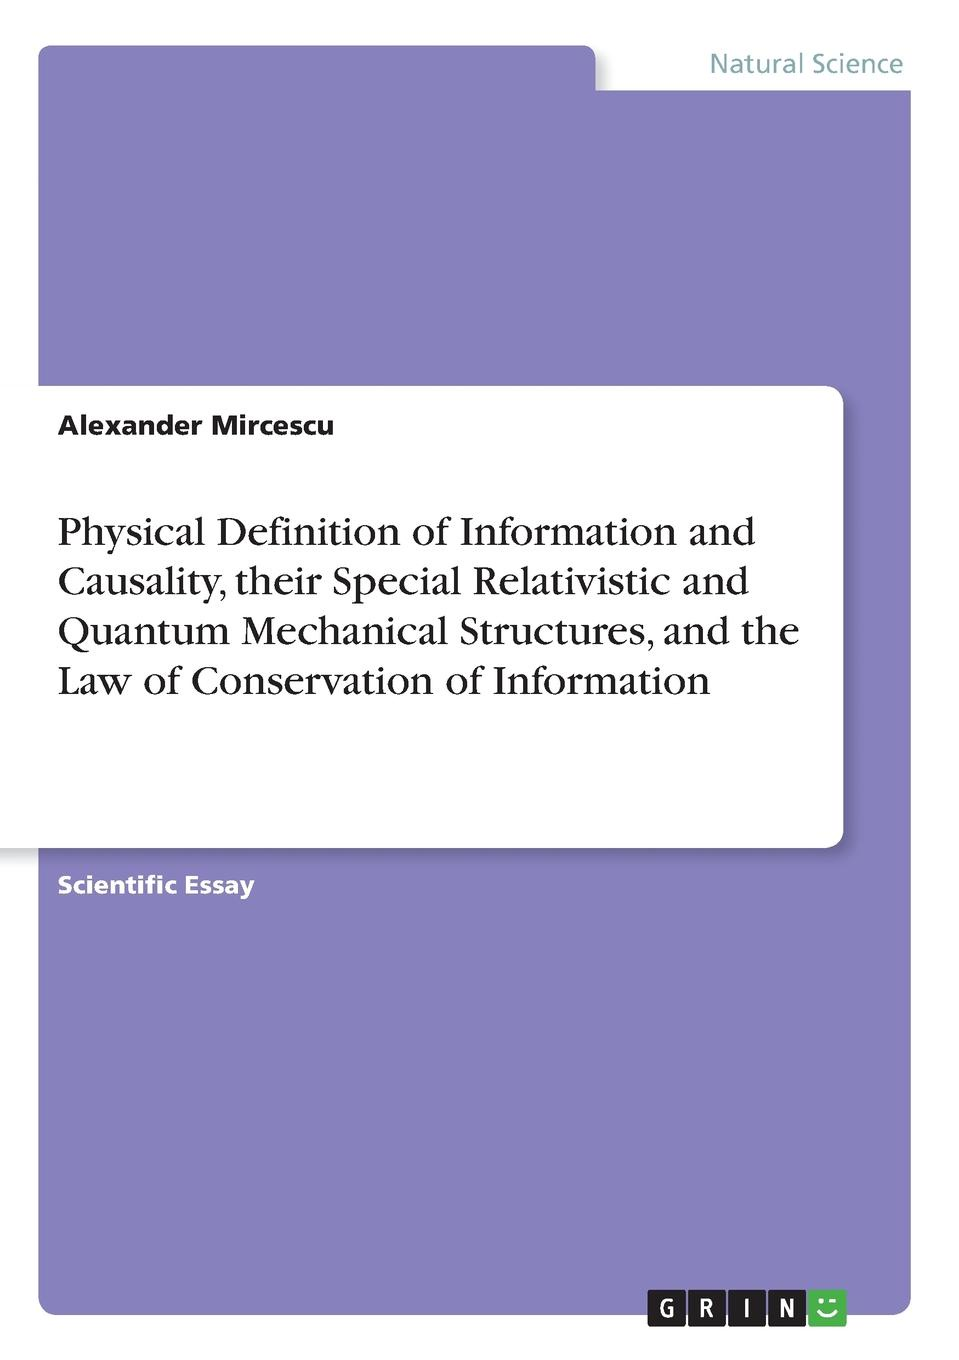 Alexander Mircescu Physical Definition of Information and Causality, their Special Relativistic and Quantum Mechanical Structures, and the Law of Conservation of Information valery abdullovich asadov law constant and formula of reason matrix information thoughts aloud law of absurdity